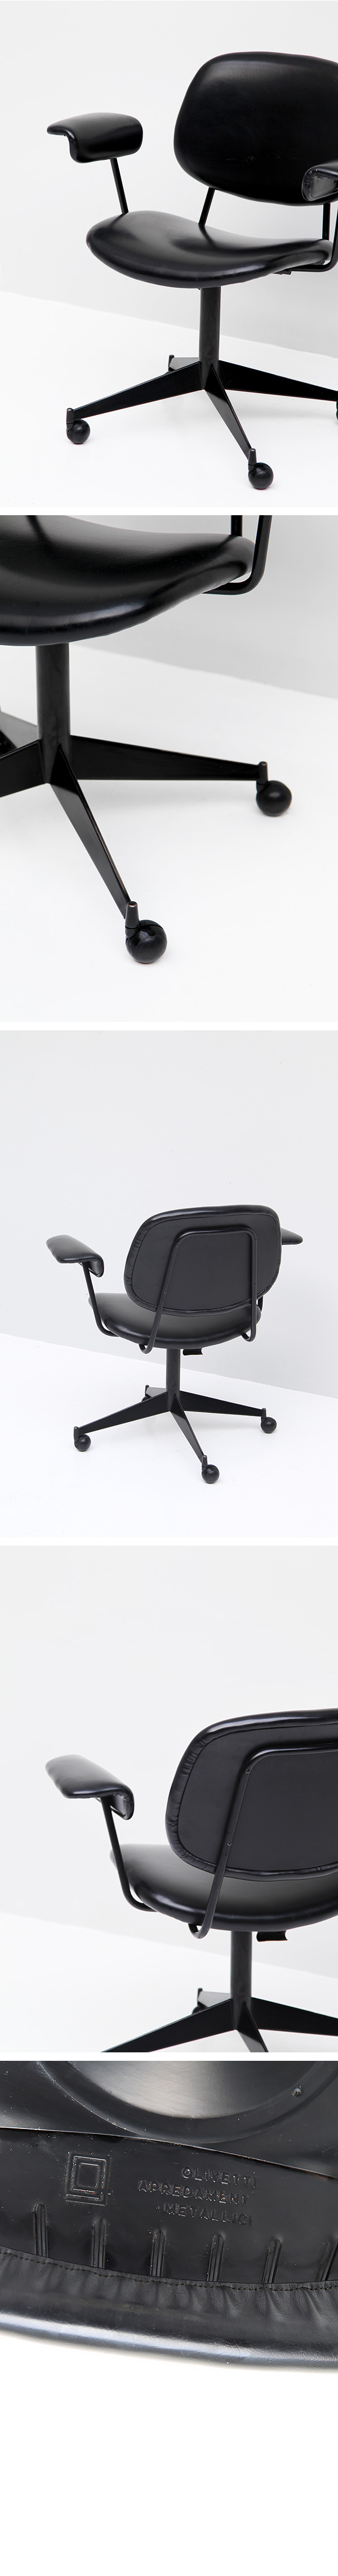 Olivetti, BBPR, swivel, desk, chair